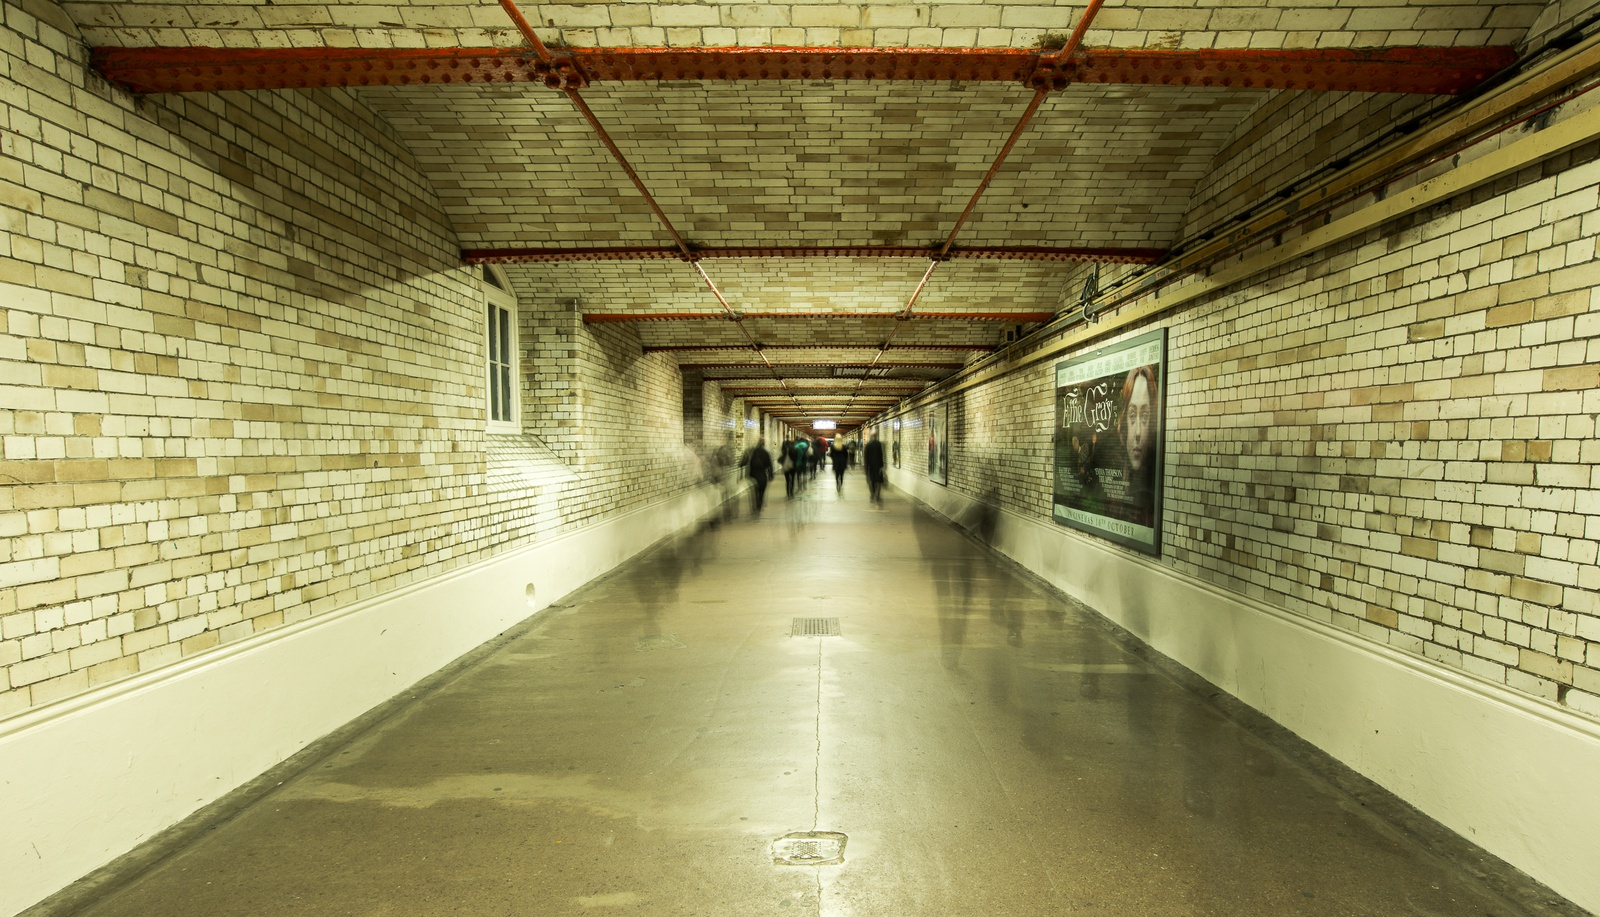 South Kensington Pedestrian Tunnel